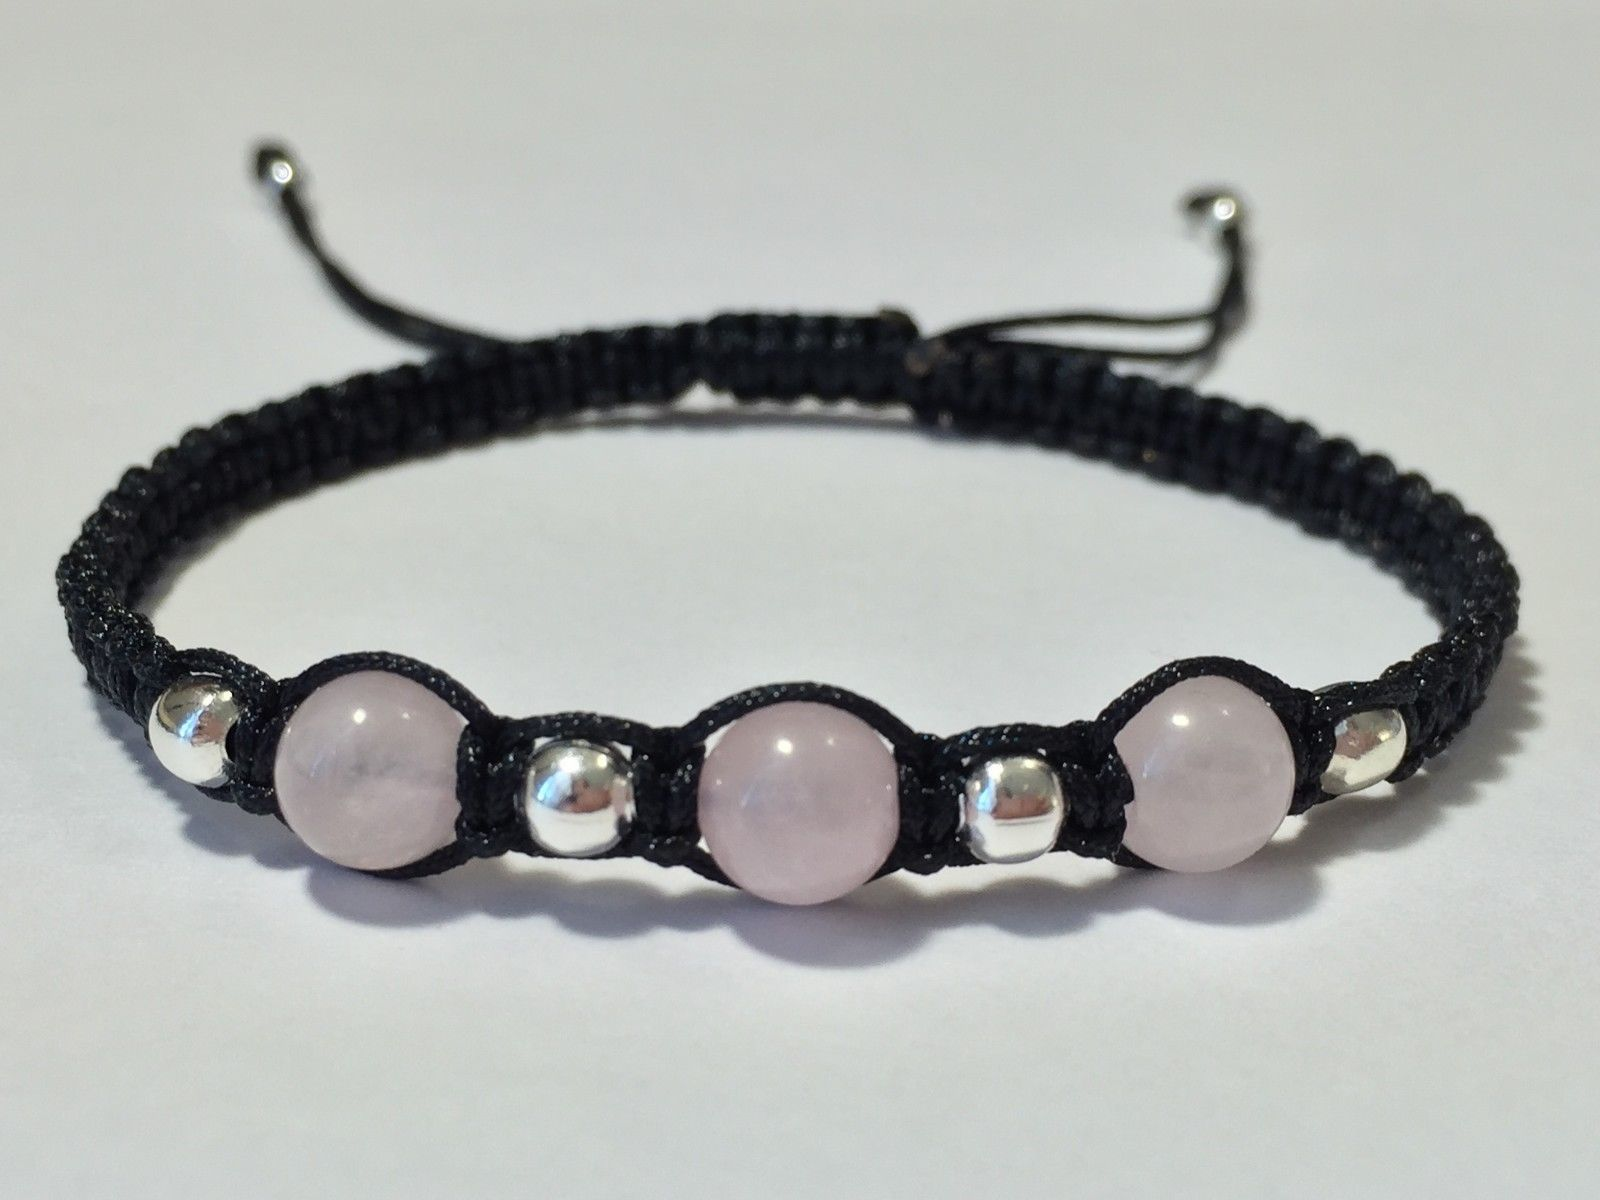 New Arrival  Mock Leather Twisted Bracelet With Colour Faceted /& Crystal Stones